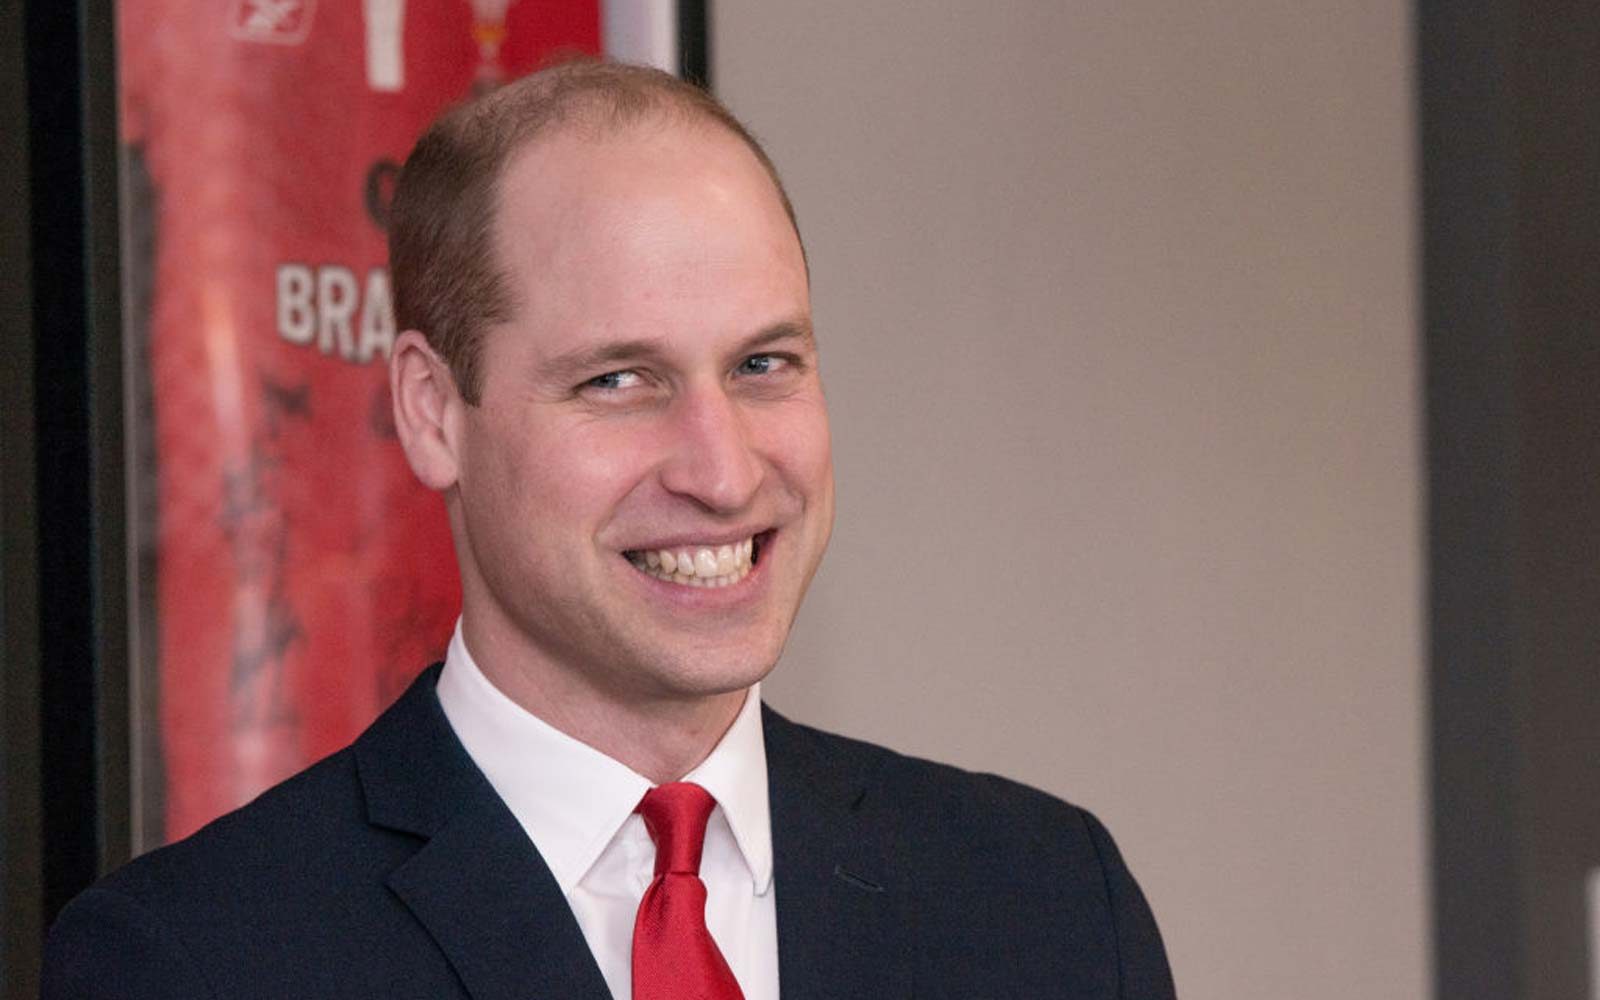 Prince William Just Spent 3 Weeks Undercover With U.K. Spy Agencies